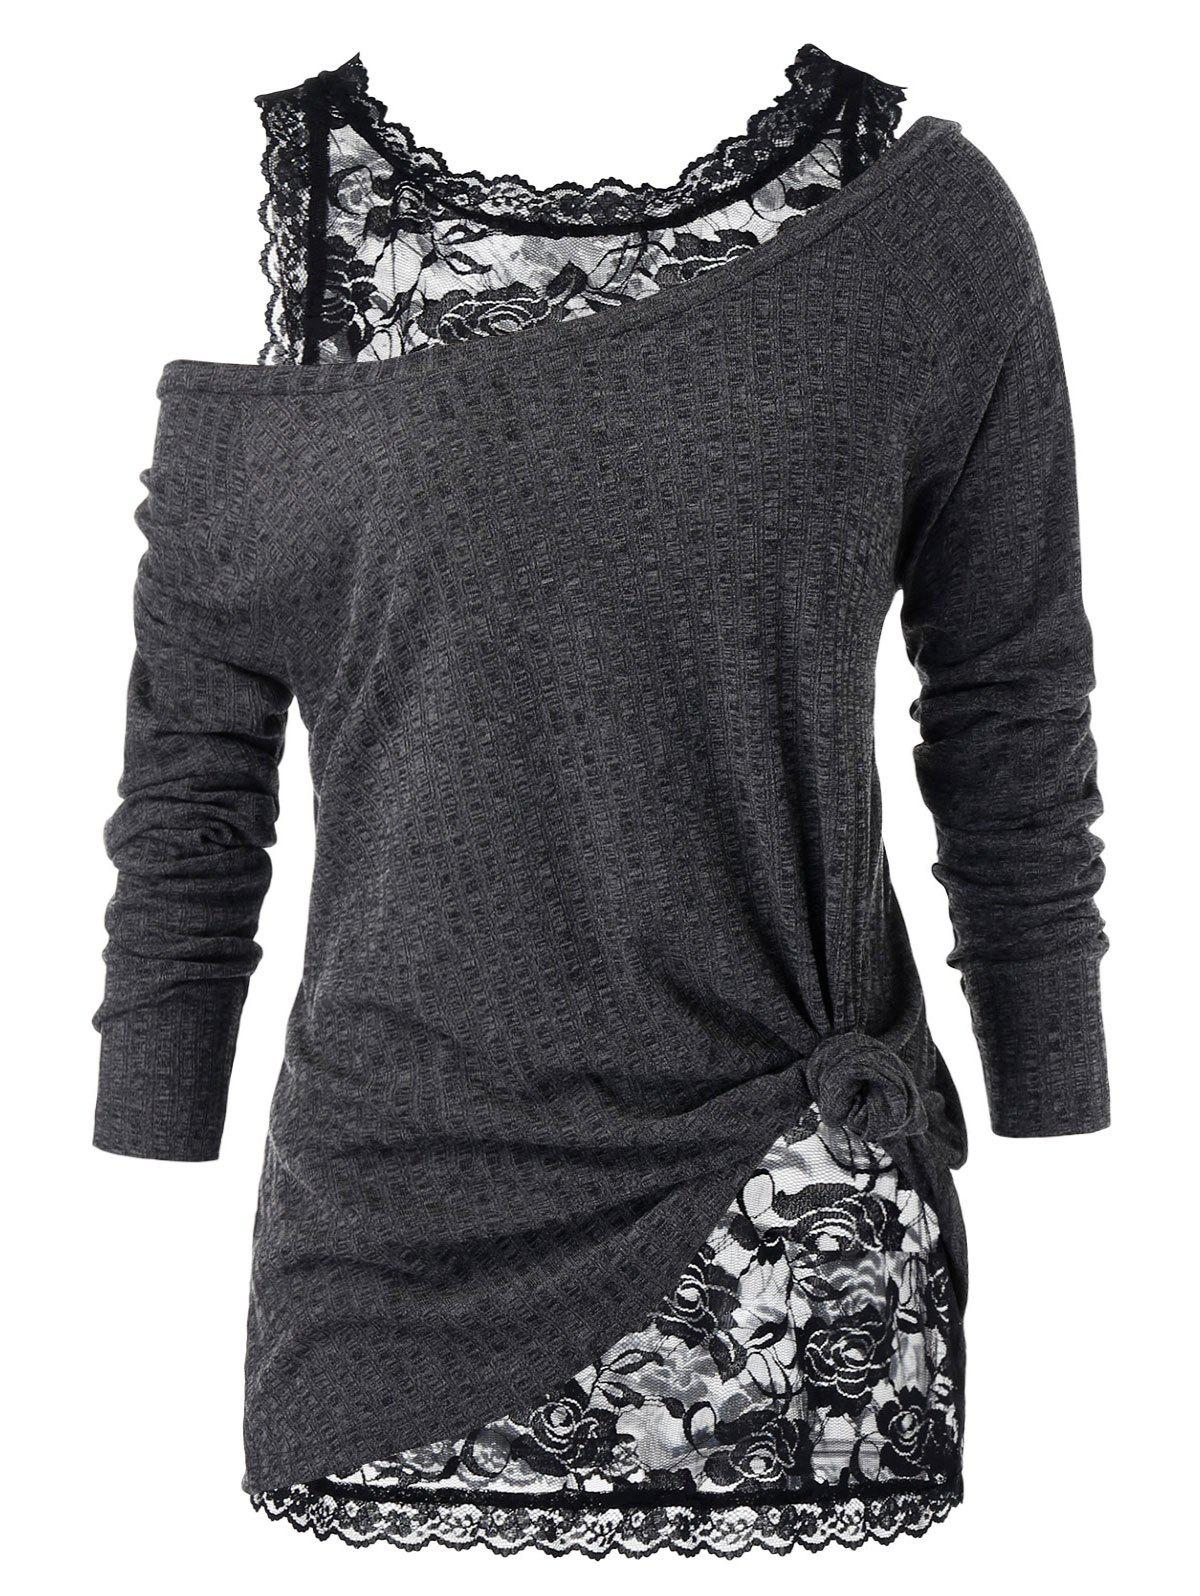 Outfits Plus Size Skew Neck Sweater and Floral Lace Top